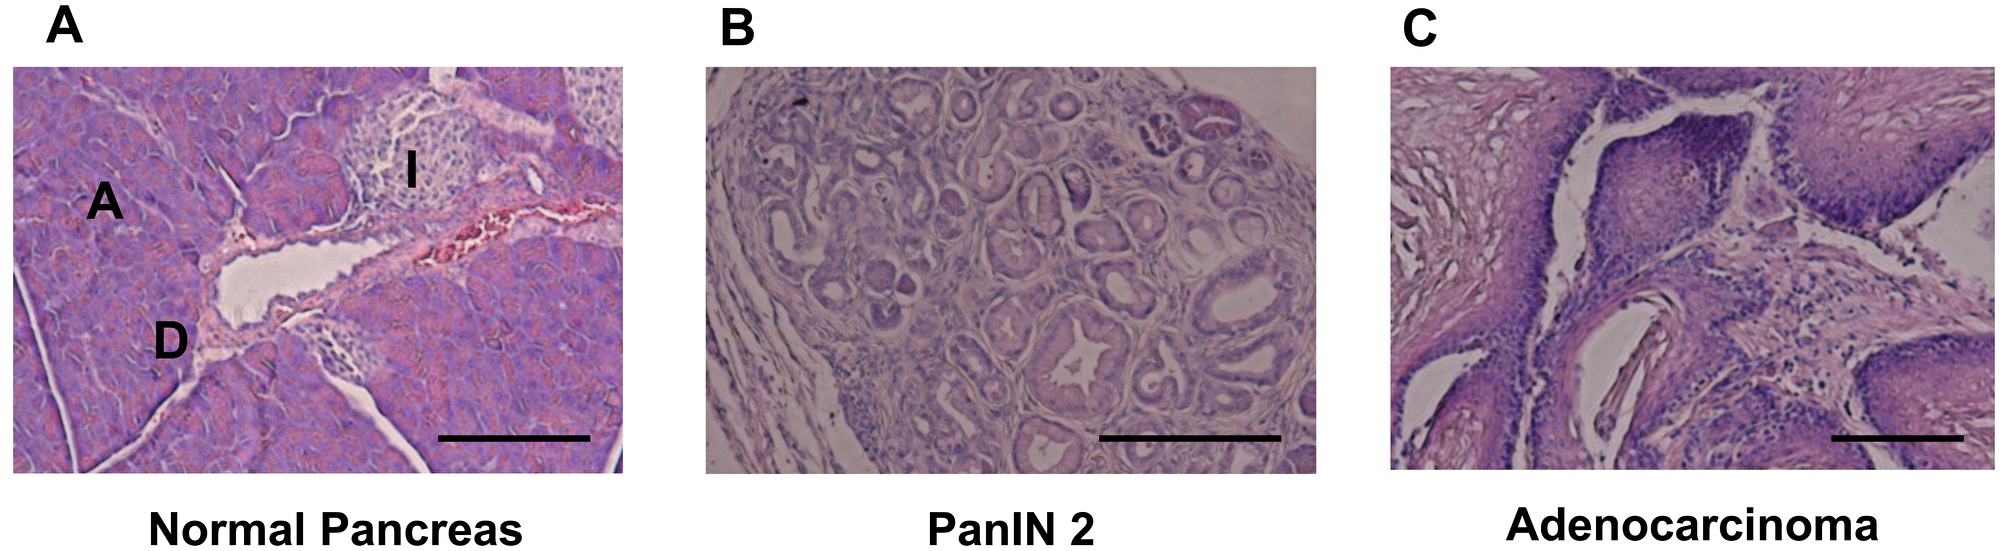 HE staining for pancreatic tissue.